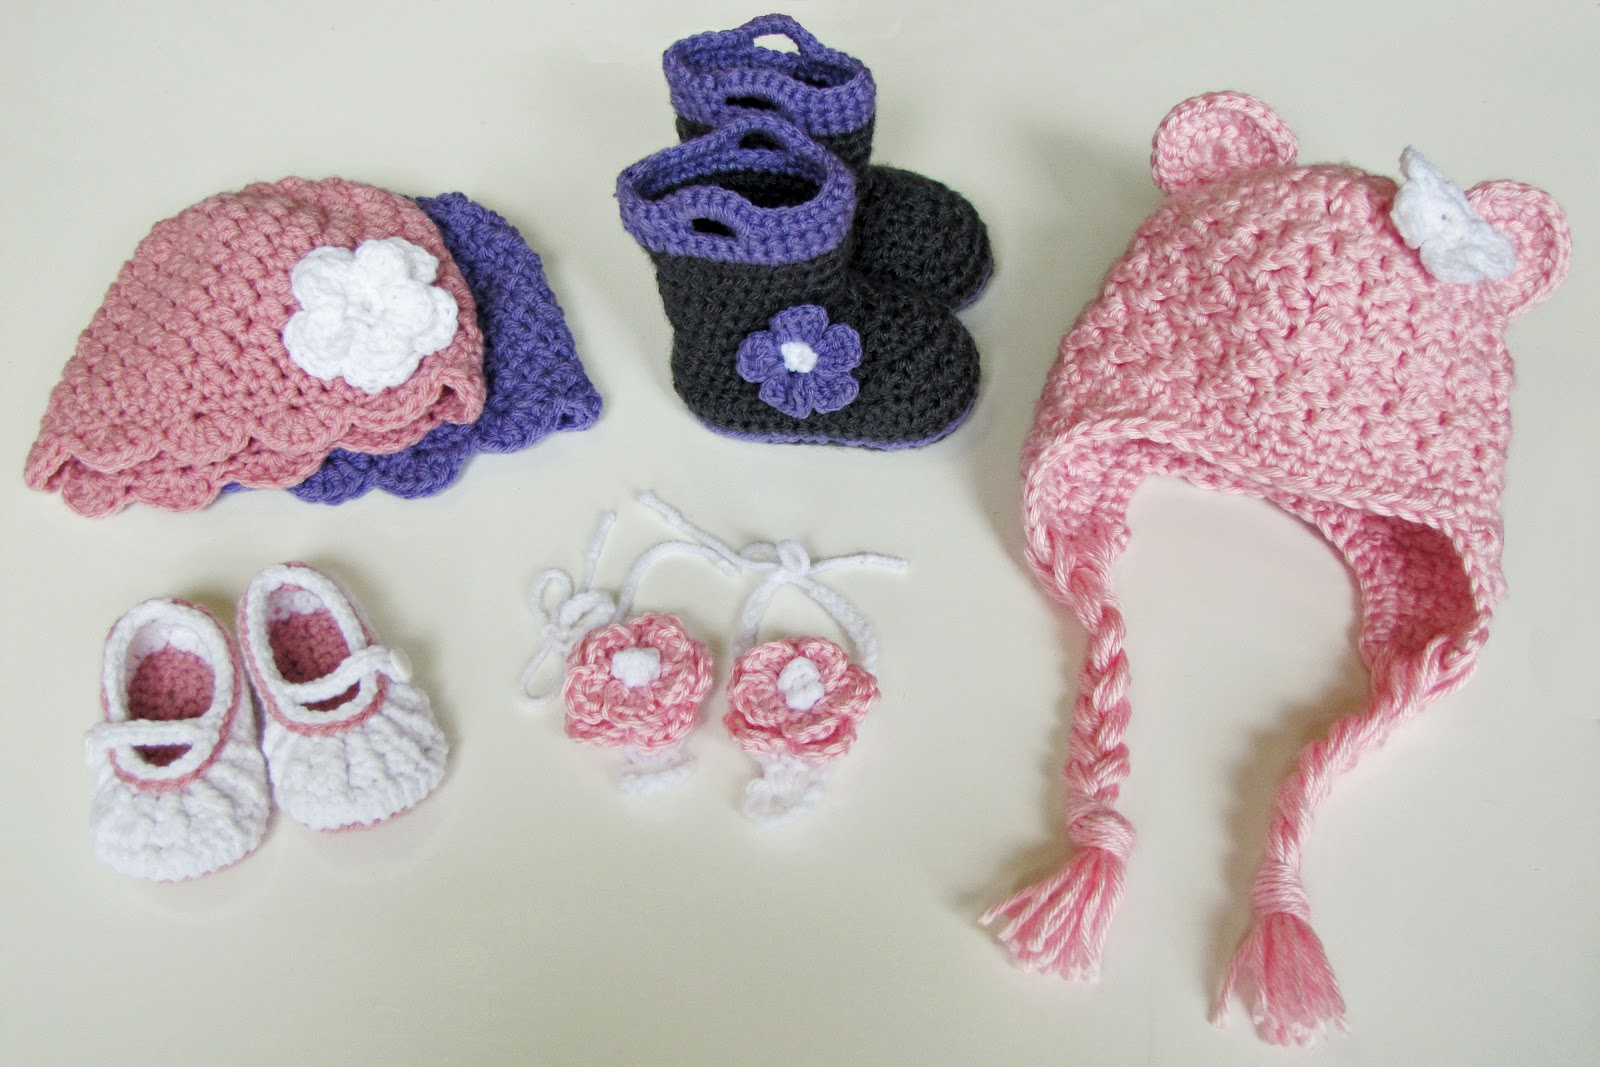 The Daily Pinner: Pin #29 Crocheted Baby Stuff